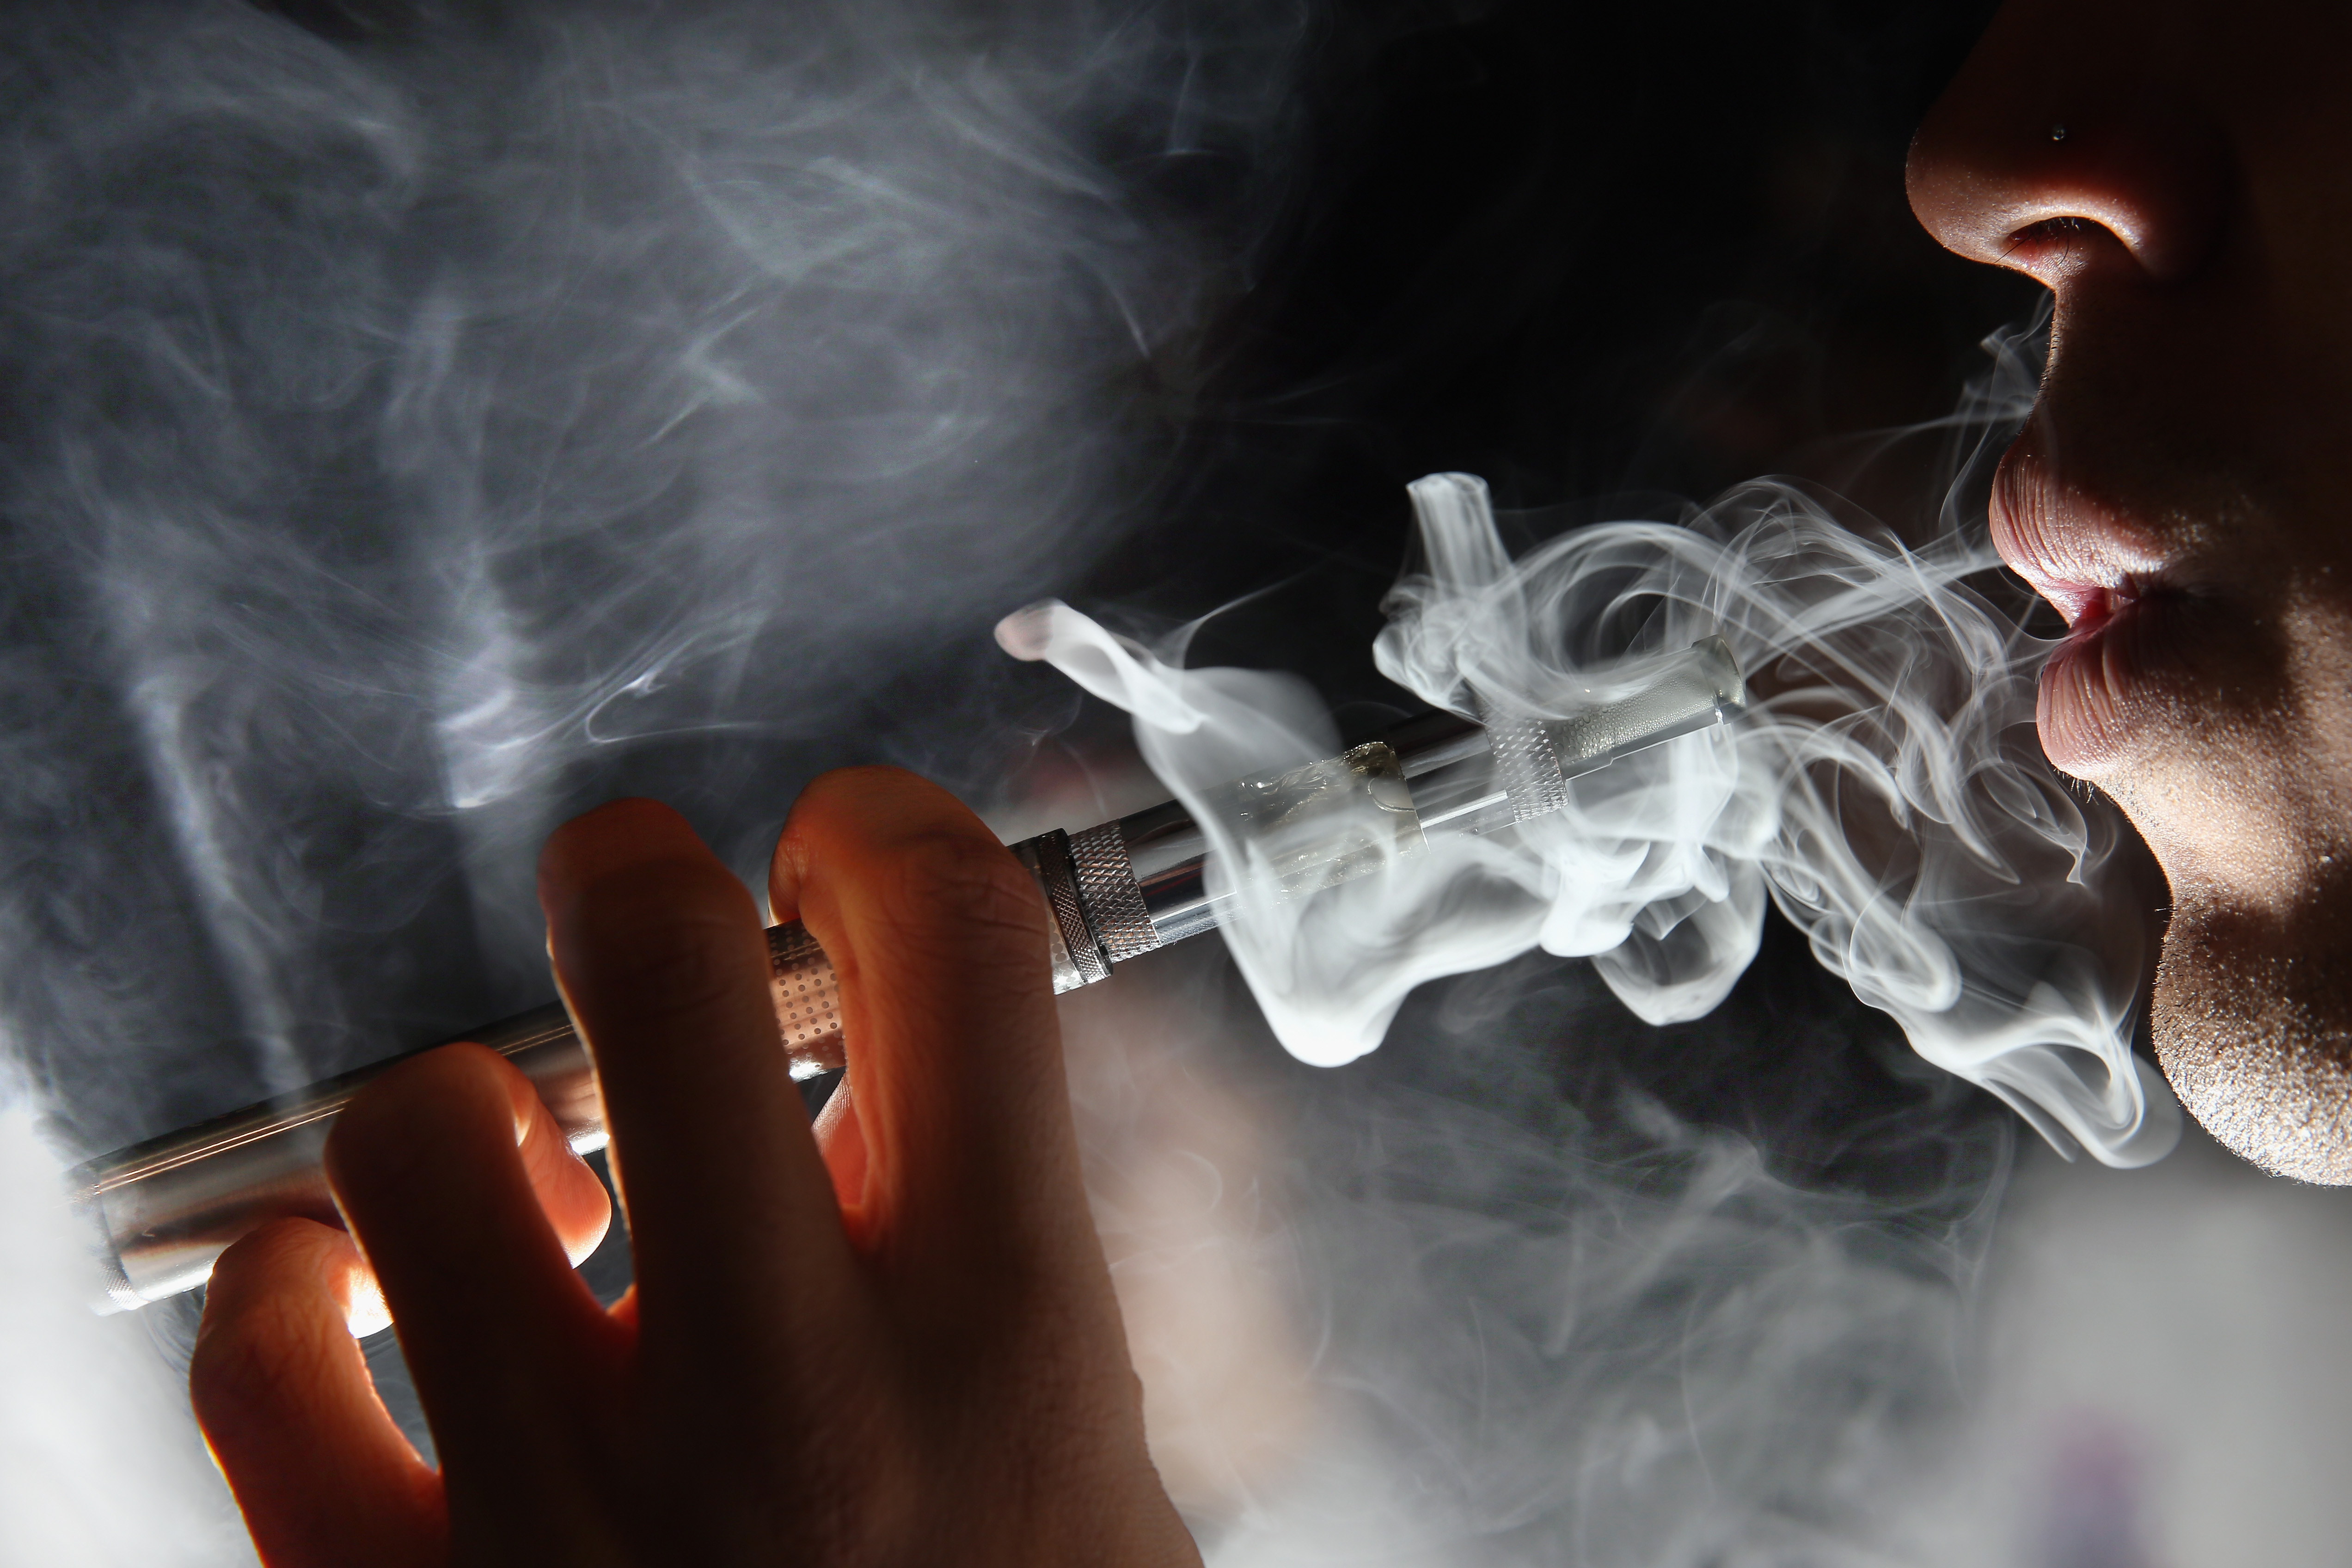 A man smokes an E-Cigarette on Aug. 27, 2014 in London.